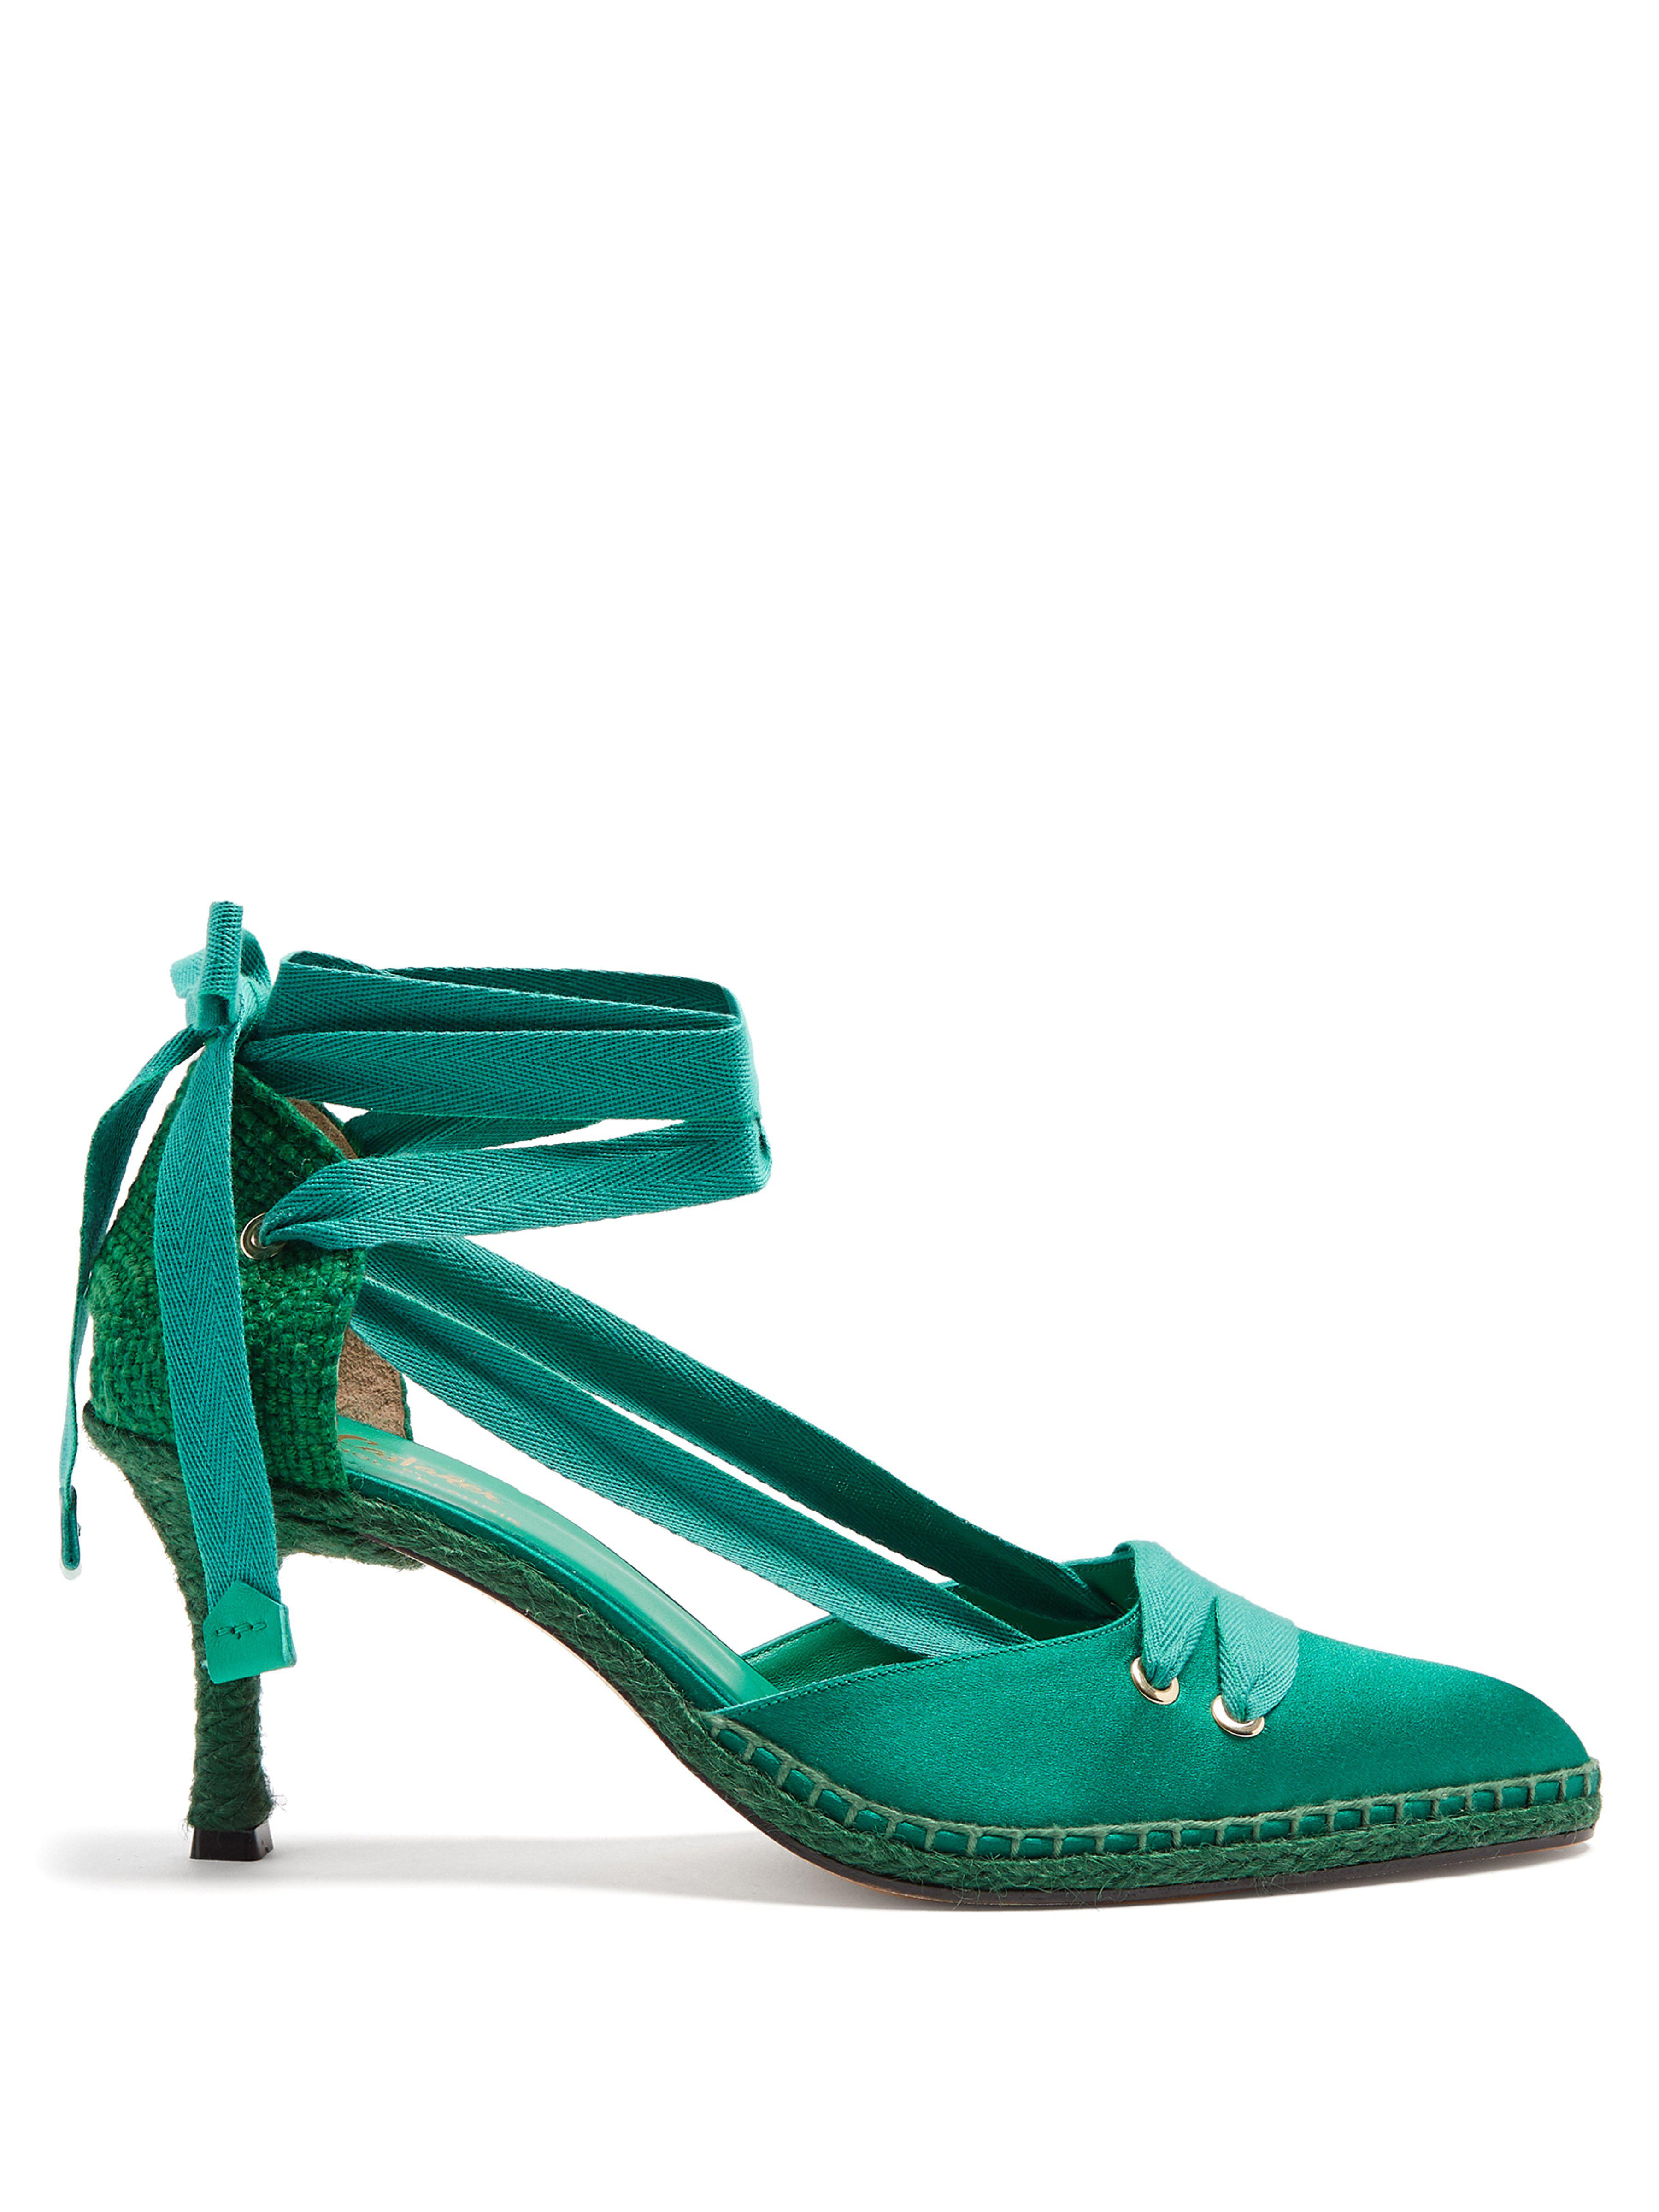 f270acba06aa3 Castaner X Manolo Blahnik Satin Pumps in Green - Lyst